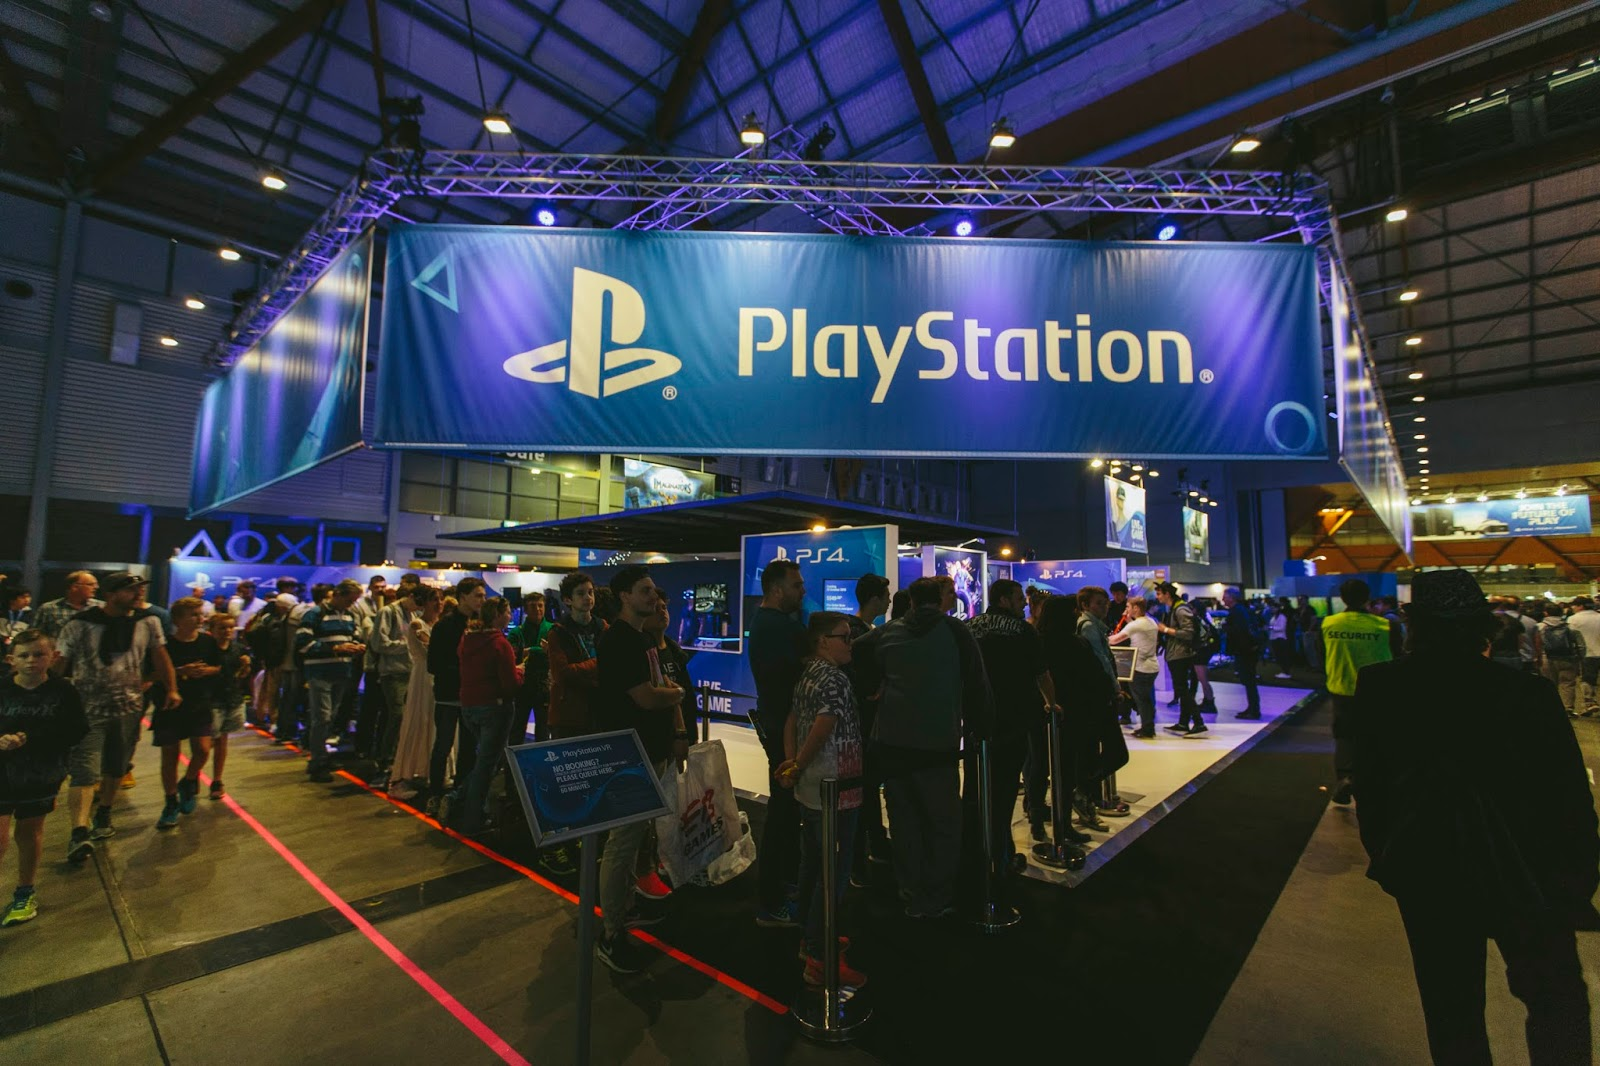 playstation australia invites fans attending pax aus 2016 to step in